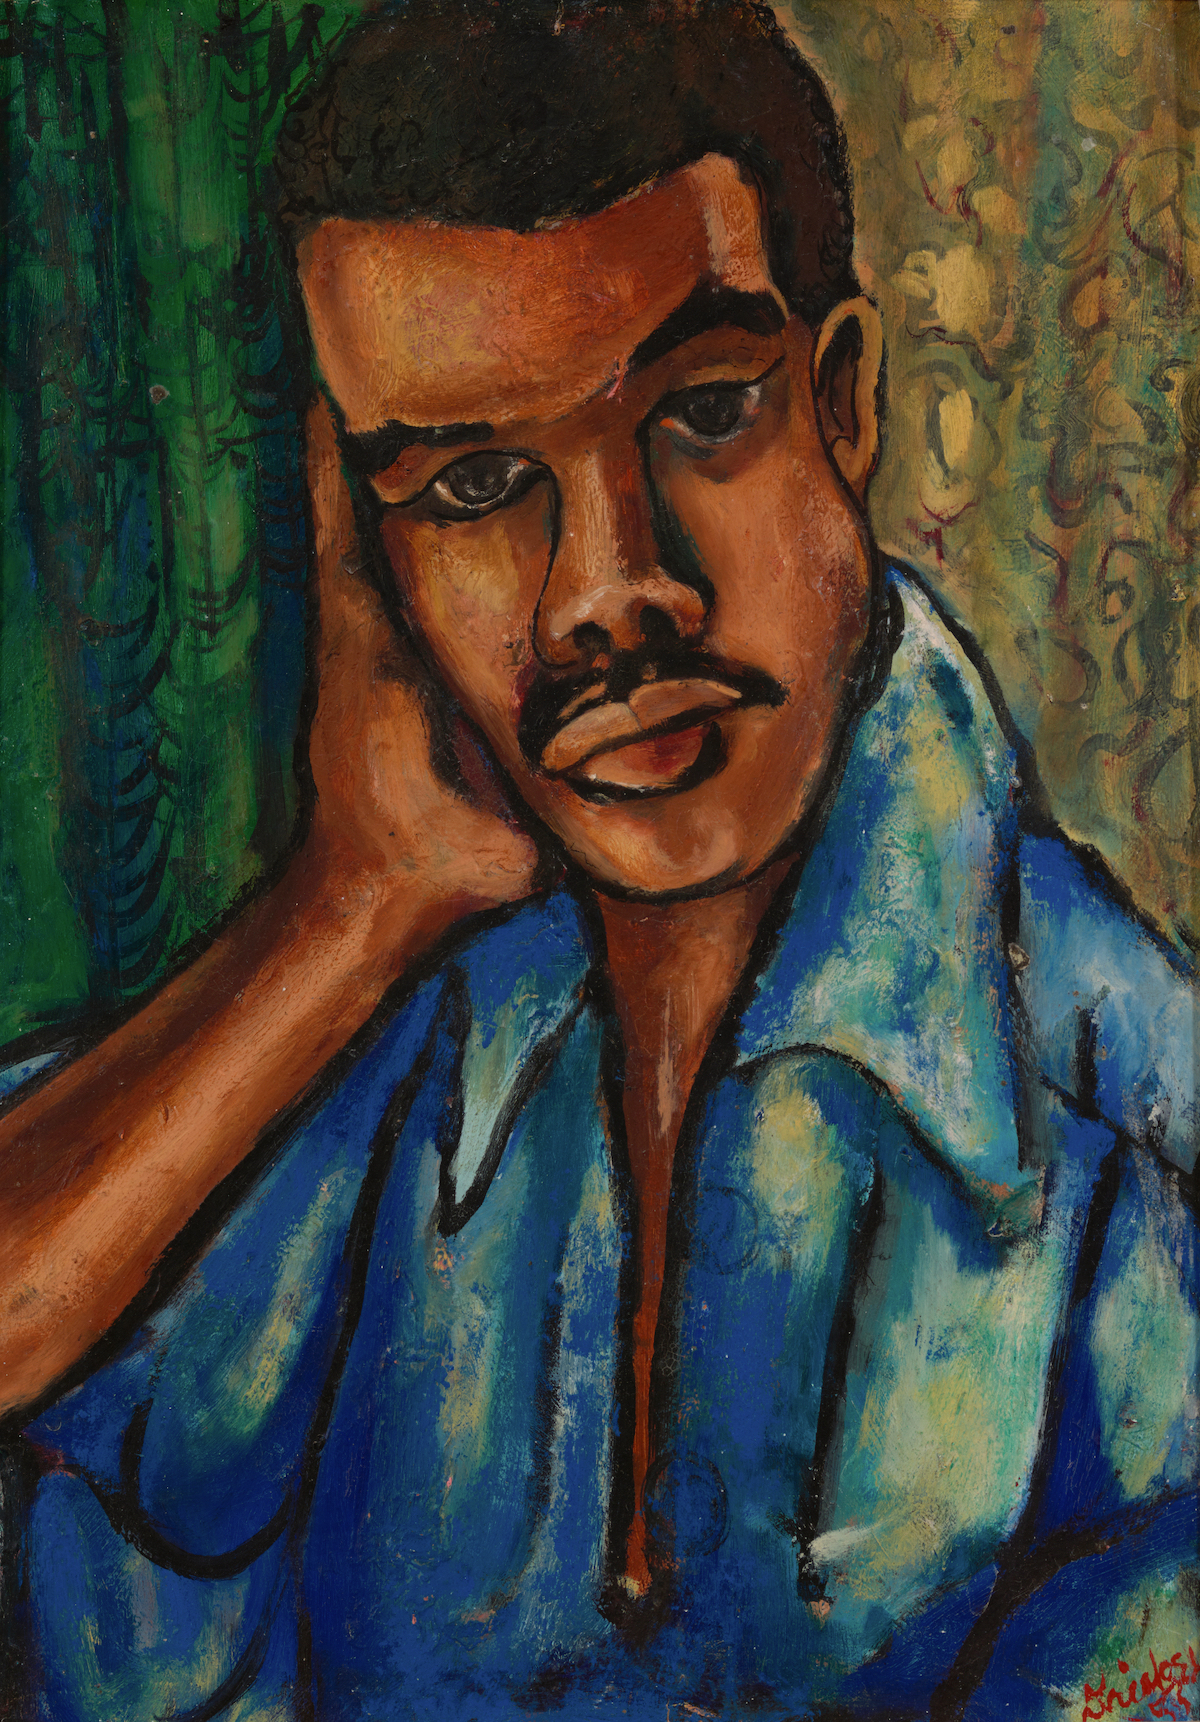 David C. Driskell, 'Self-Portrait,' 1953. A Black man with almond-shaped eyes and a blue shirt appears before a green and gold background.